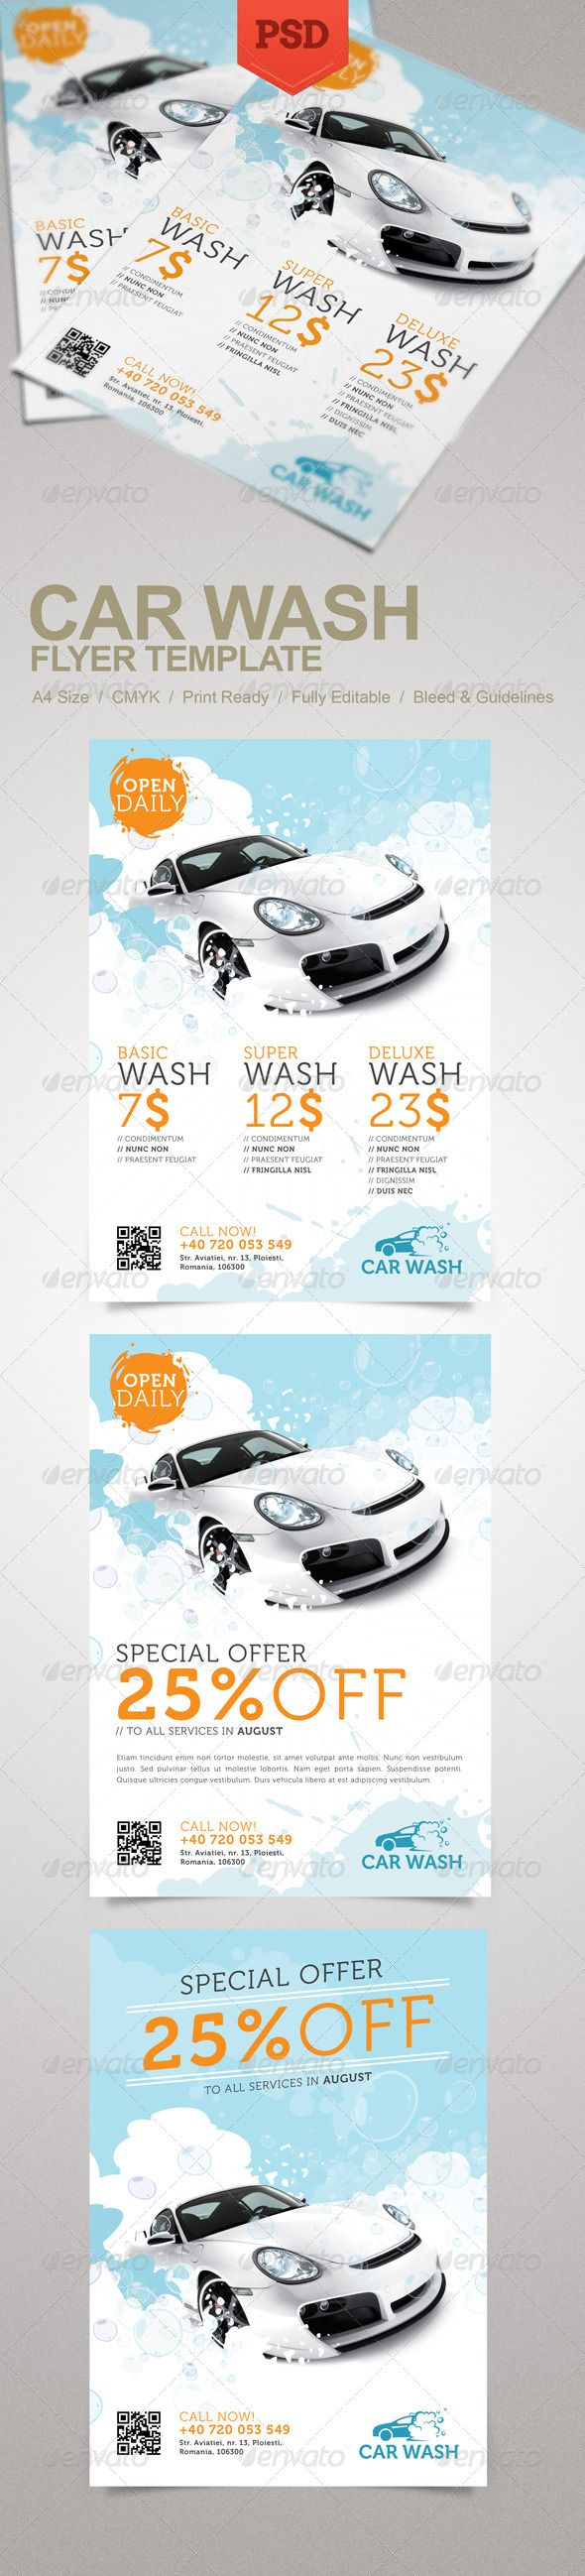 Car Wash Flyer #GraphicRiver Promote your business with a unique and creative flyer template package. Perfect for a wide range of car wash related businesses like: Car Wash Auto Detailing Services or Car Wash Equipment. Simple to work with and highly customizable, it ca be easily adjusted to fit your needs. Features: A4 Size CMYK 300 dpi Print Ready 3 design options Well named and organized layers Fully editable PSD templates Bleed and guidelines Font details in the Help file. Car image…